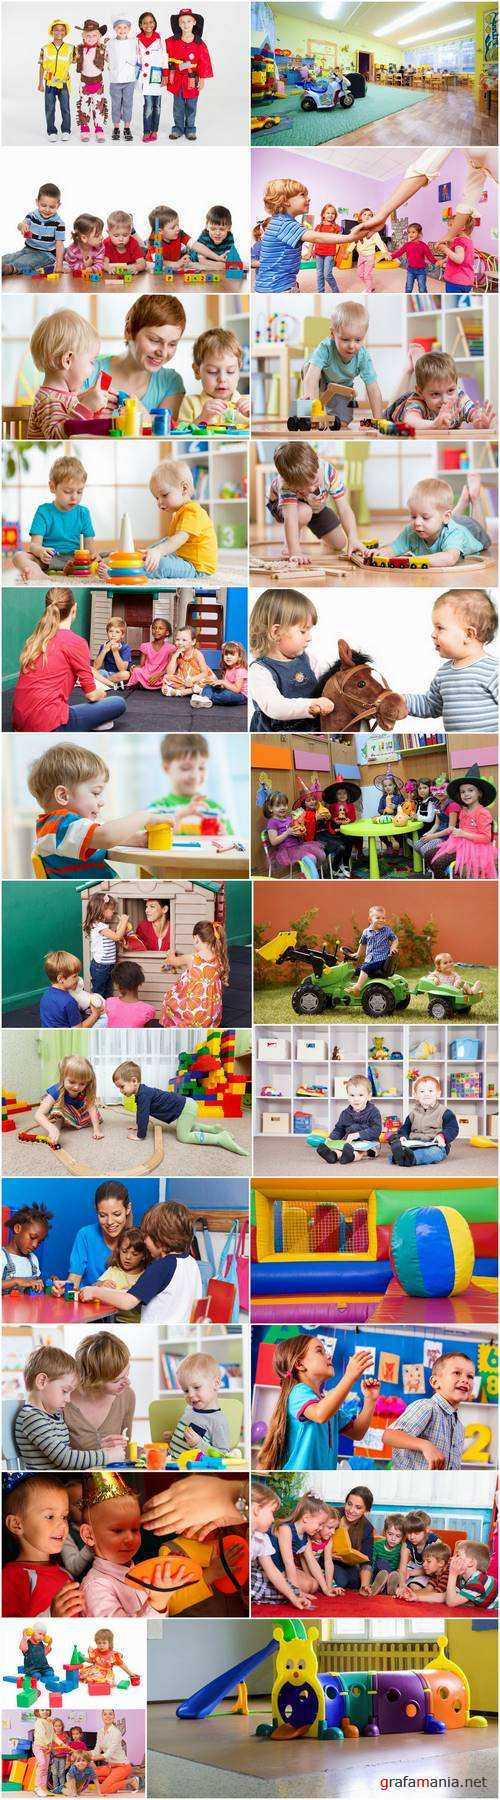 Baby children playing in kindergarten education training 25 HQ Jpeg